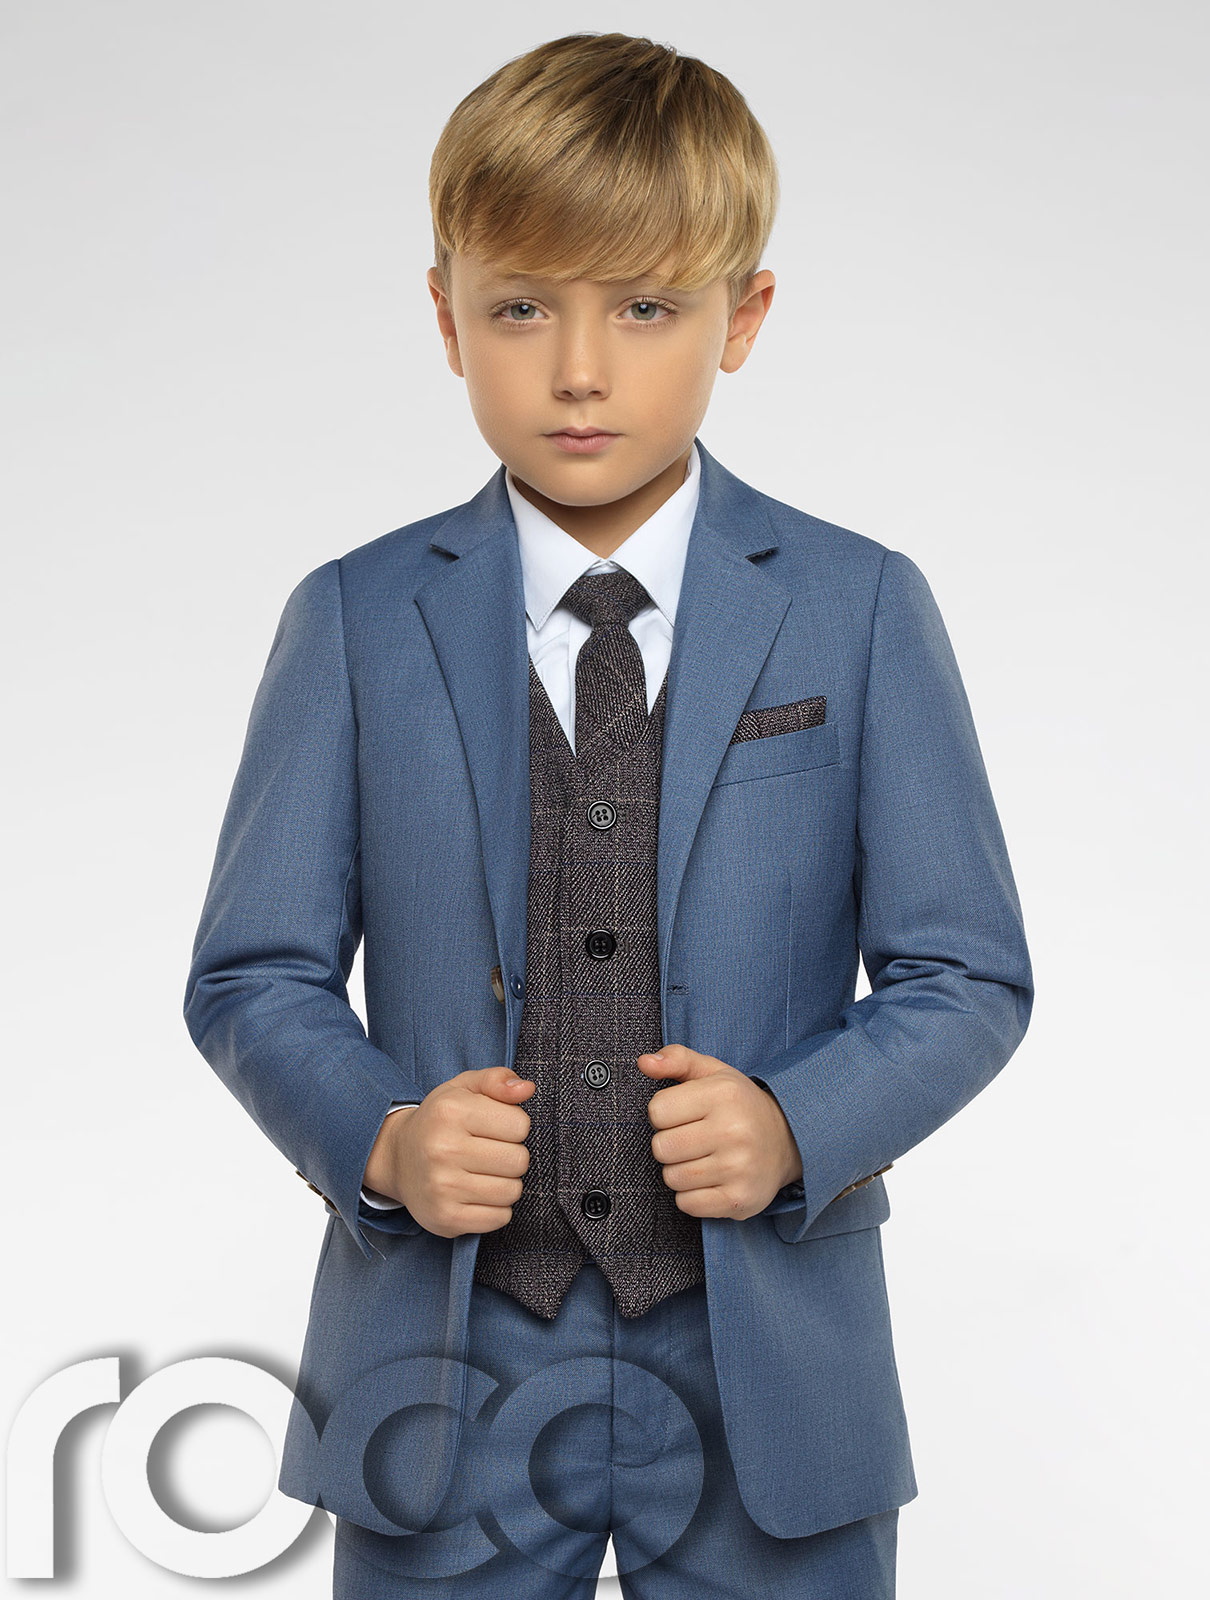 Boys Chambray Suit, Boys Blue Check Waistcoat, Page Boy Suit, Boys ...